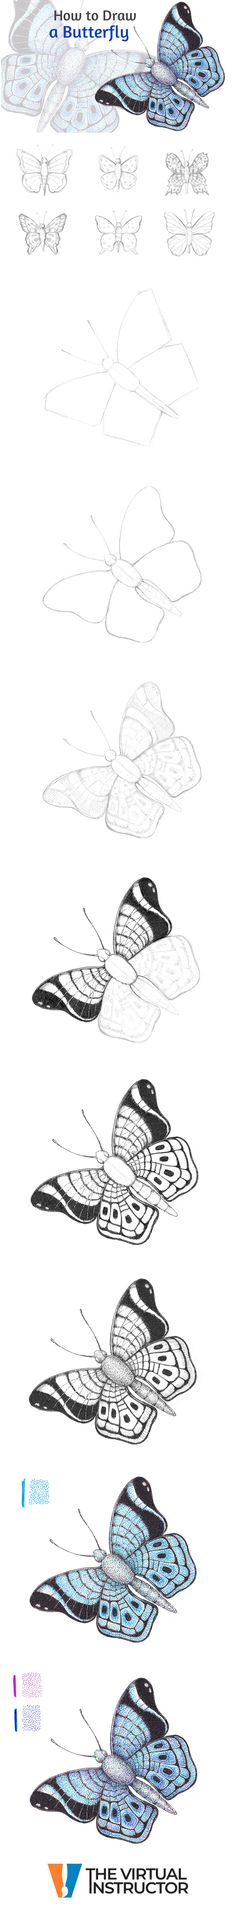 Learn how to draw a butterfly with pen and ink using stippling and hatching in this step by step lesson. Ink Pen Drawings, Animal Drawings, Drawing Lessons, Art Lessons, Stippling, Step By Step Drawing, Watercolor Techniques, Learn To Draw, Watercolour Painting